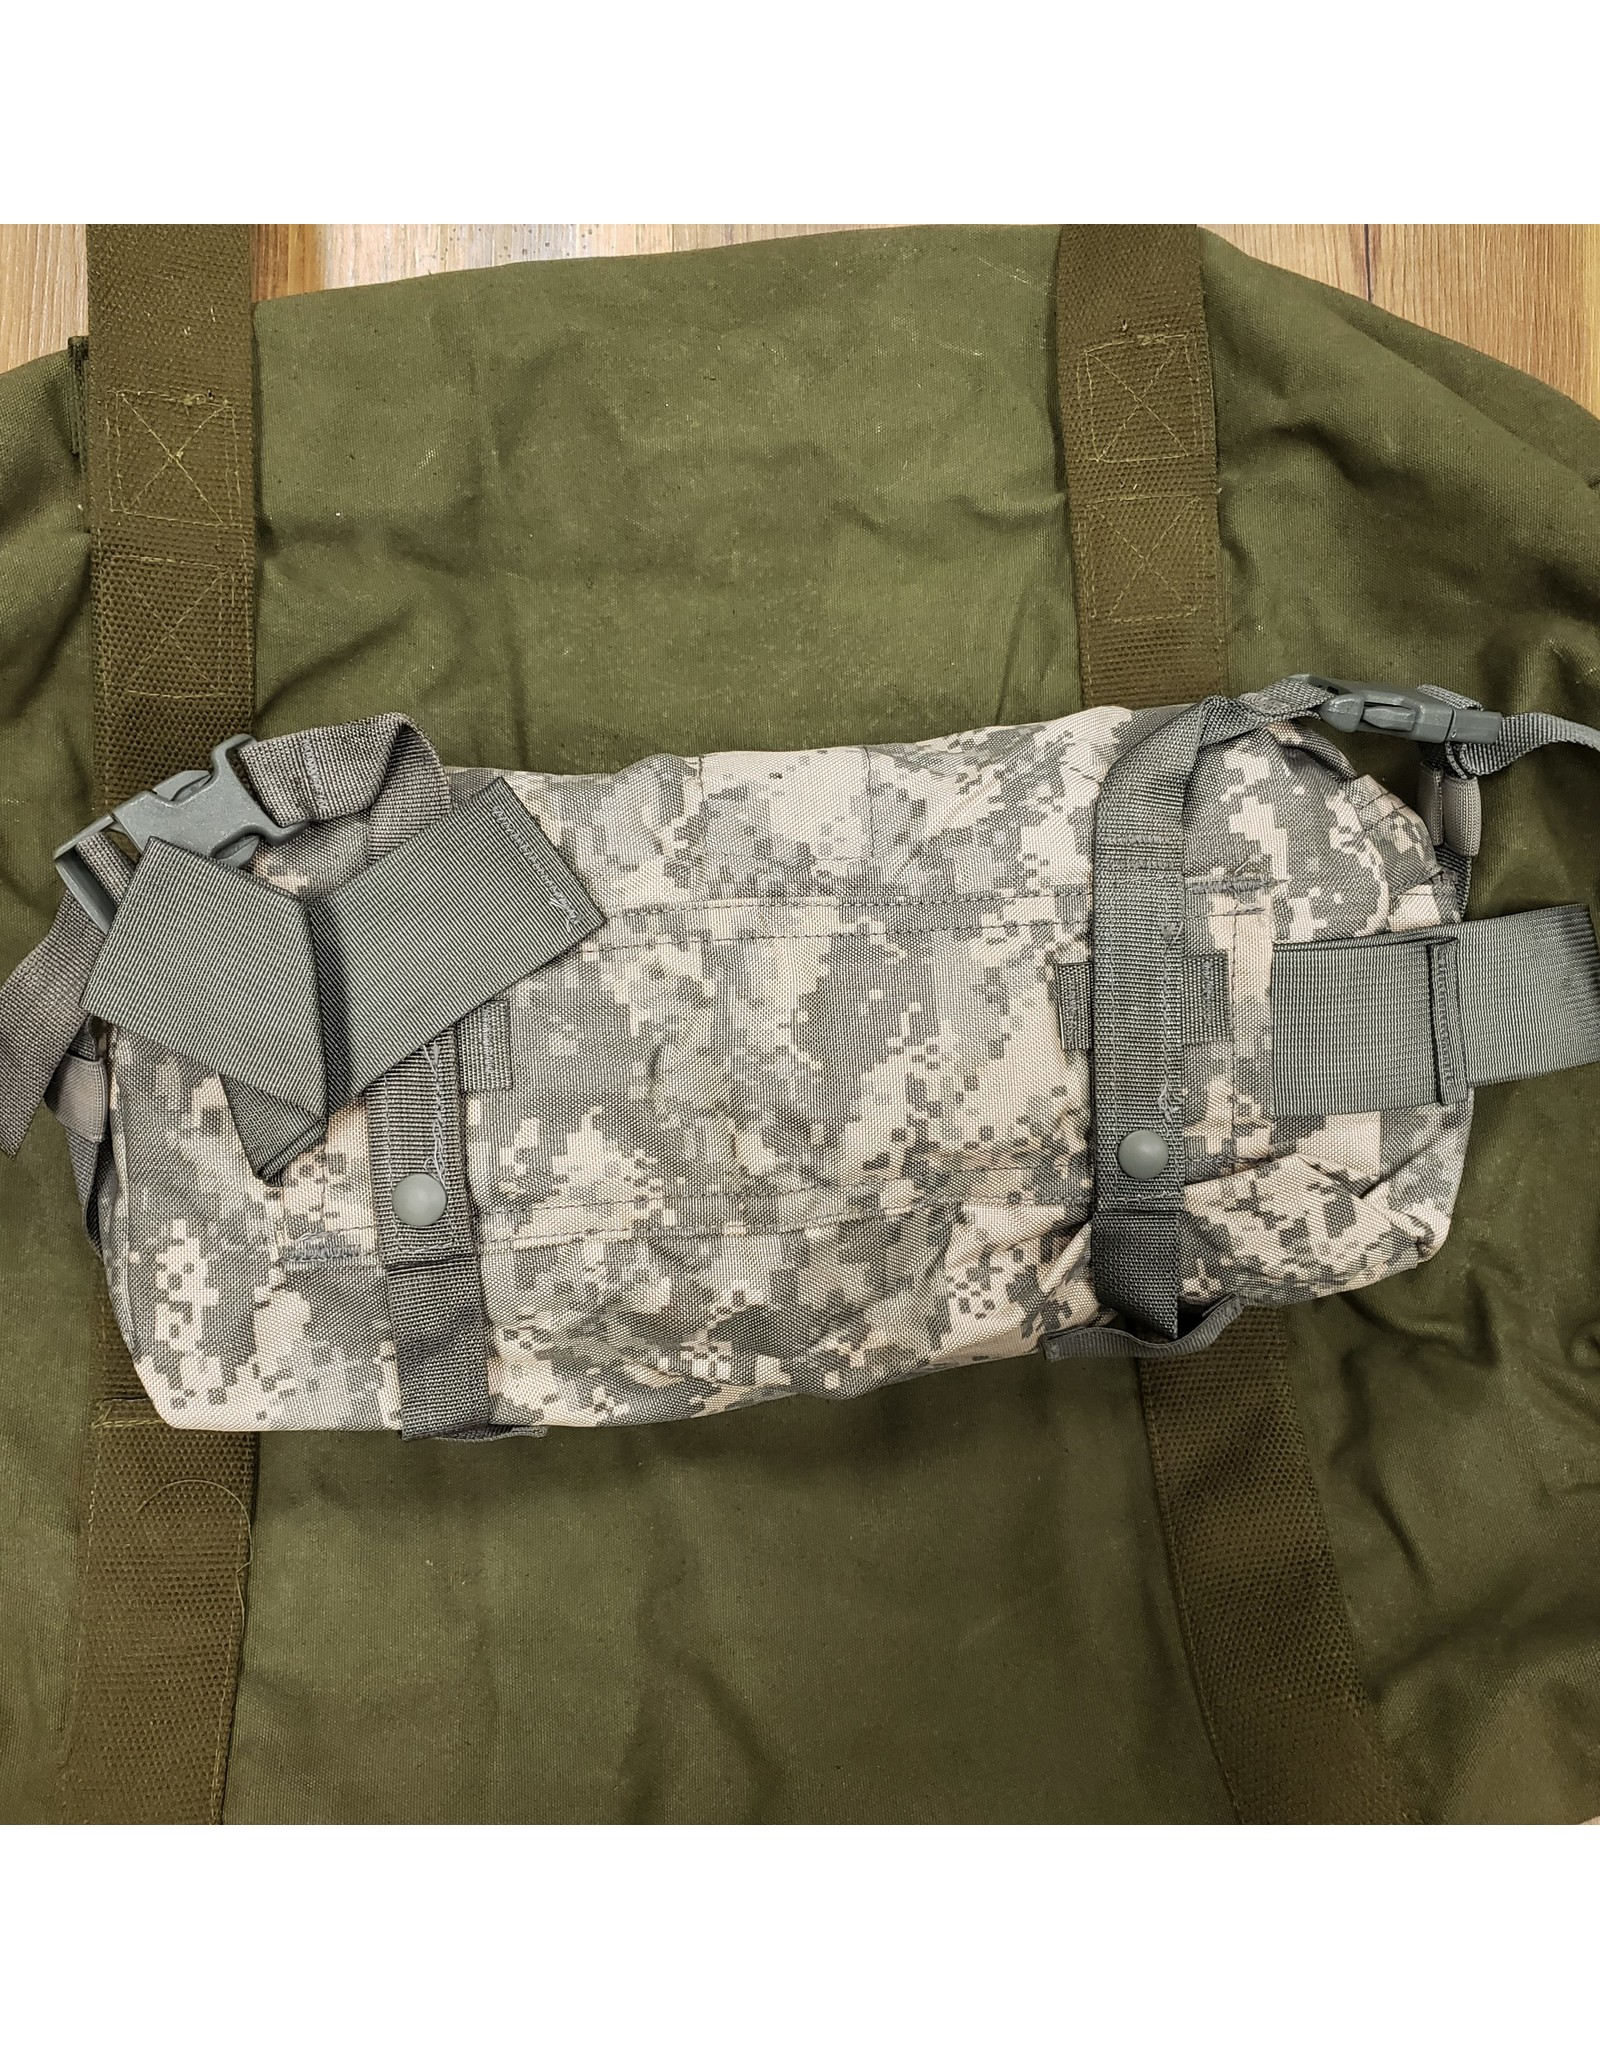 WORLD FAMOUS SALES U.S. ACU FANNY POUCH USED